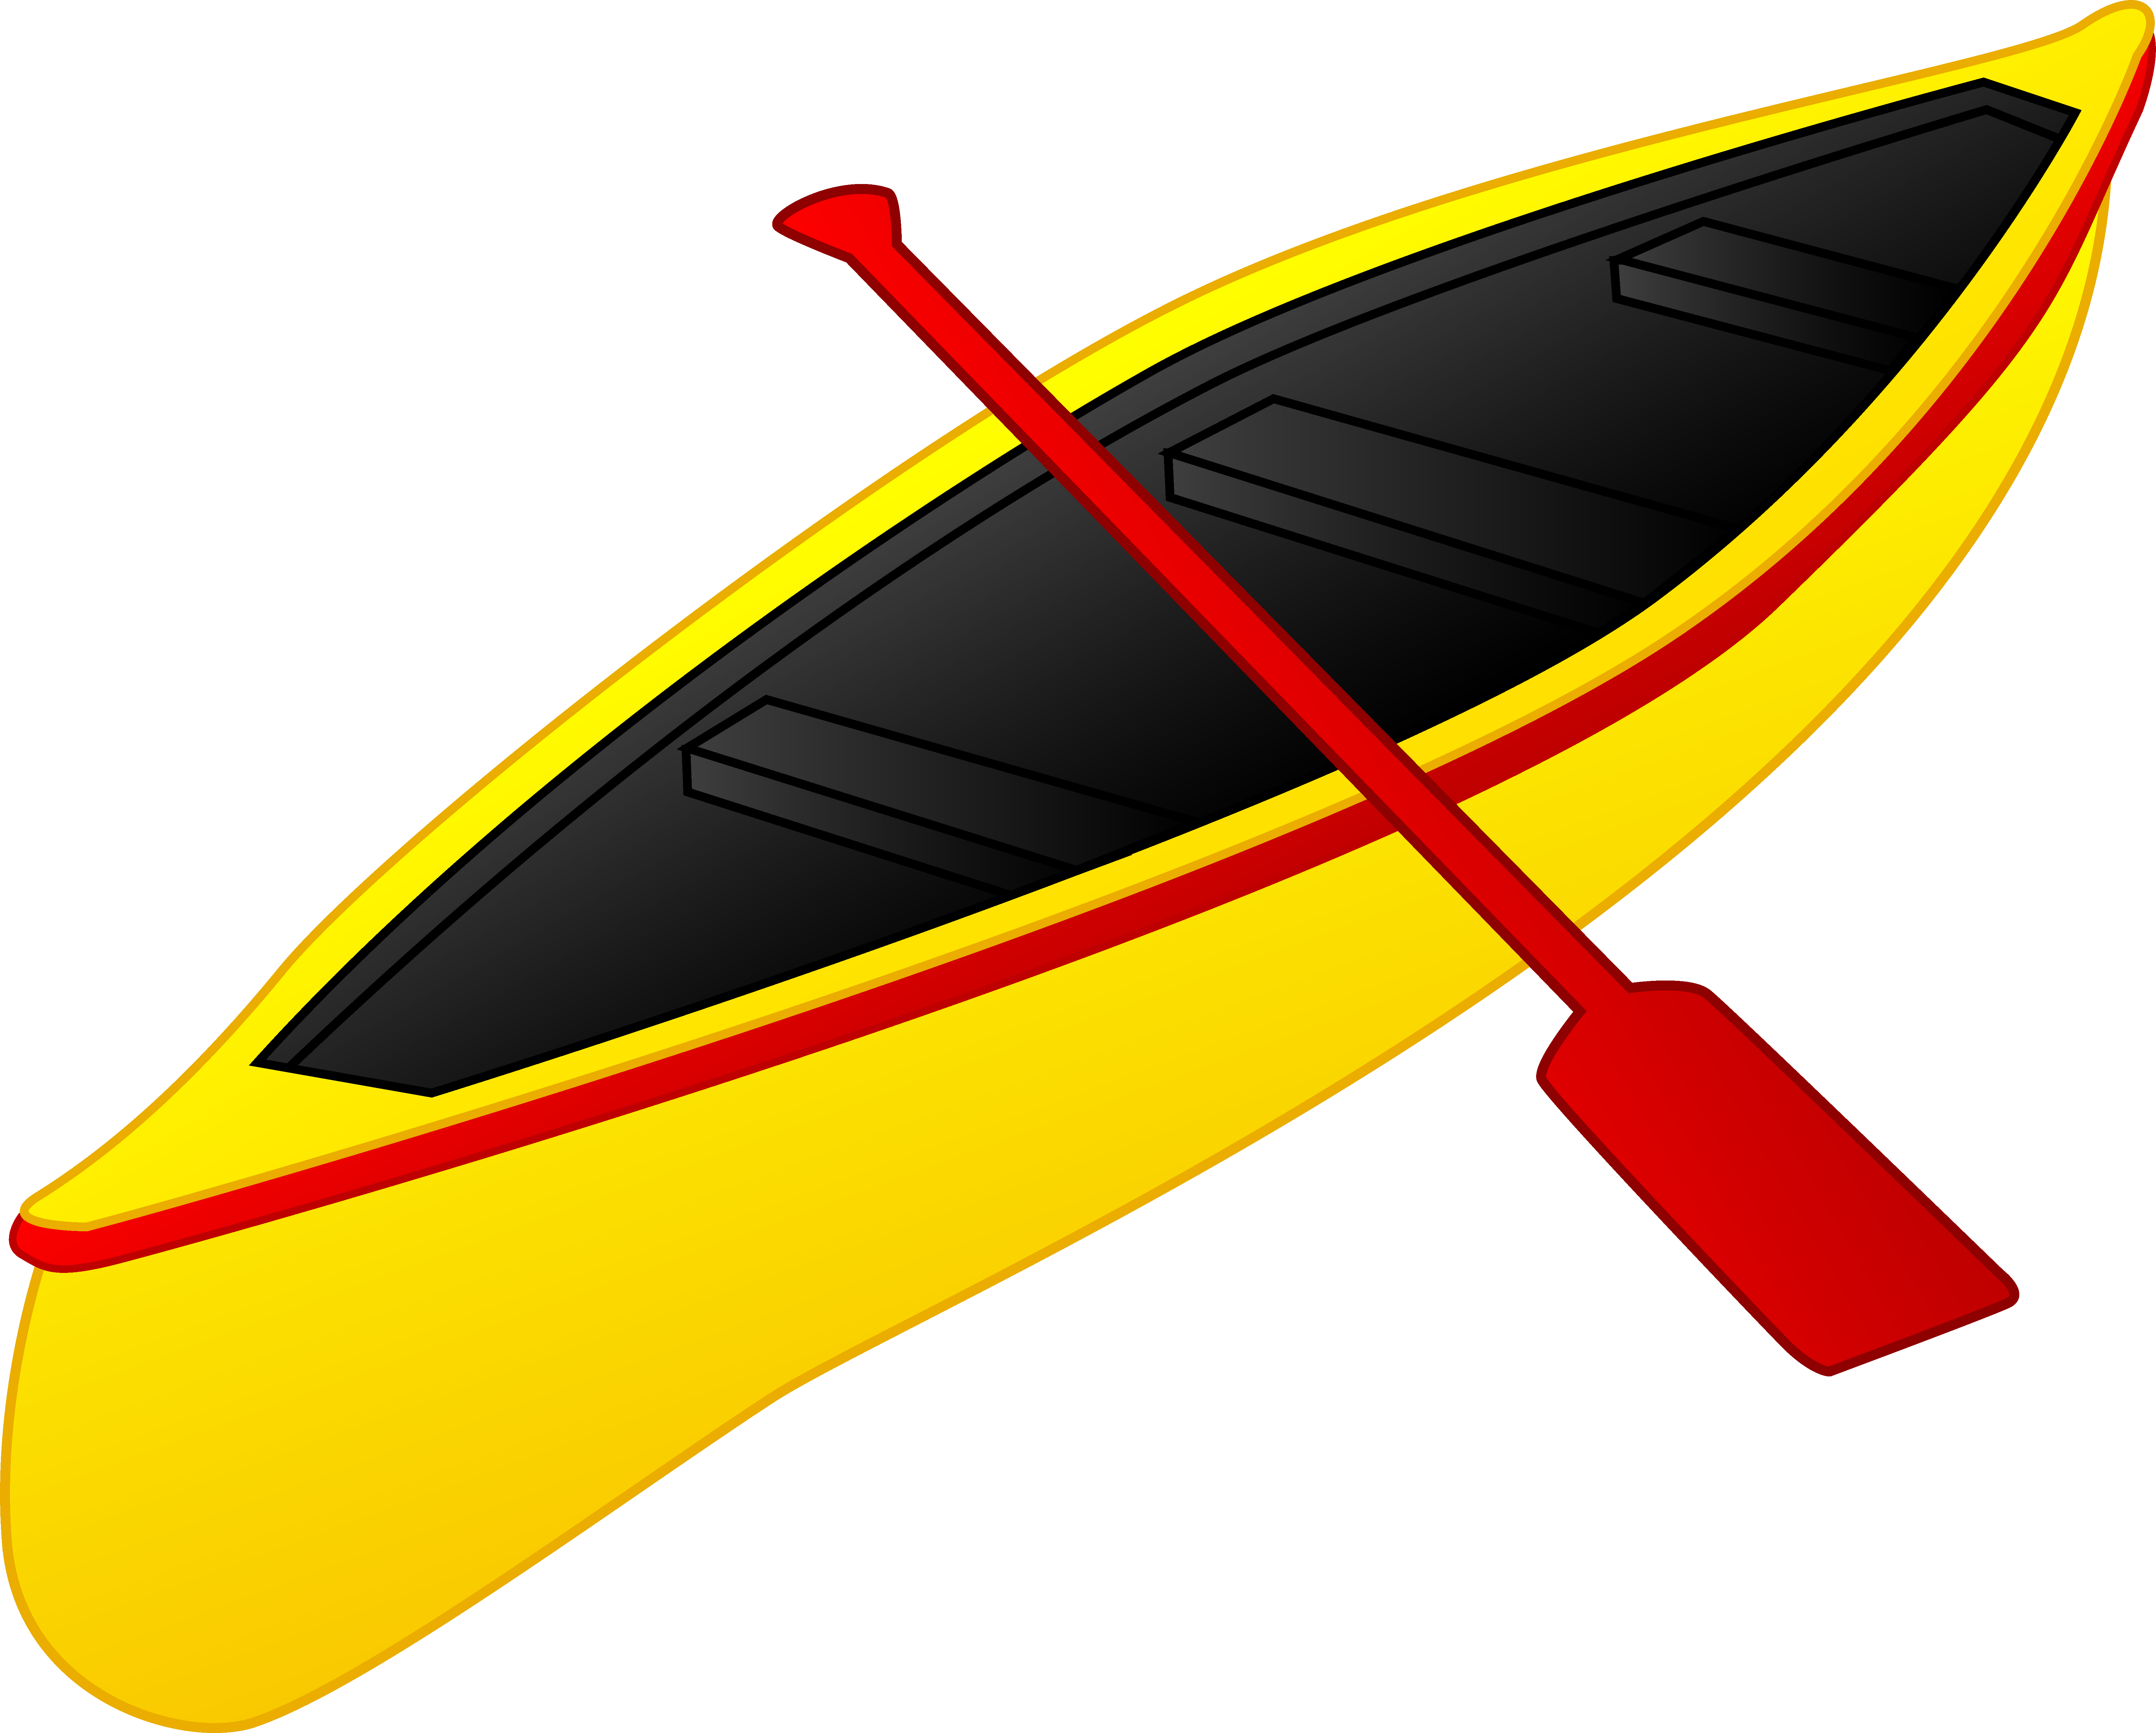 Canoe clipart canoe fishing. Free dime cliparts download